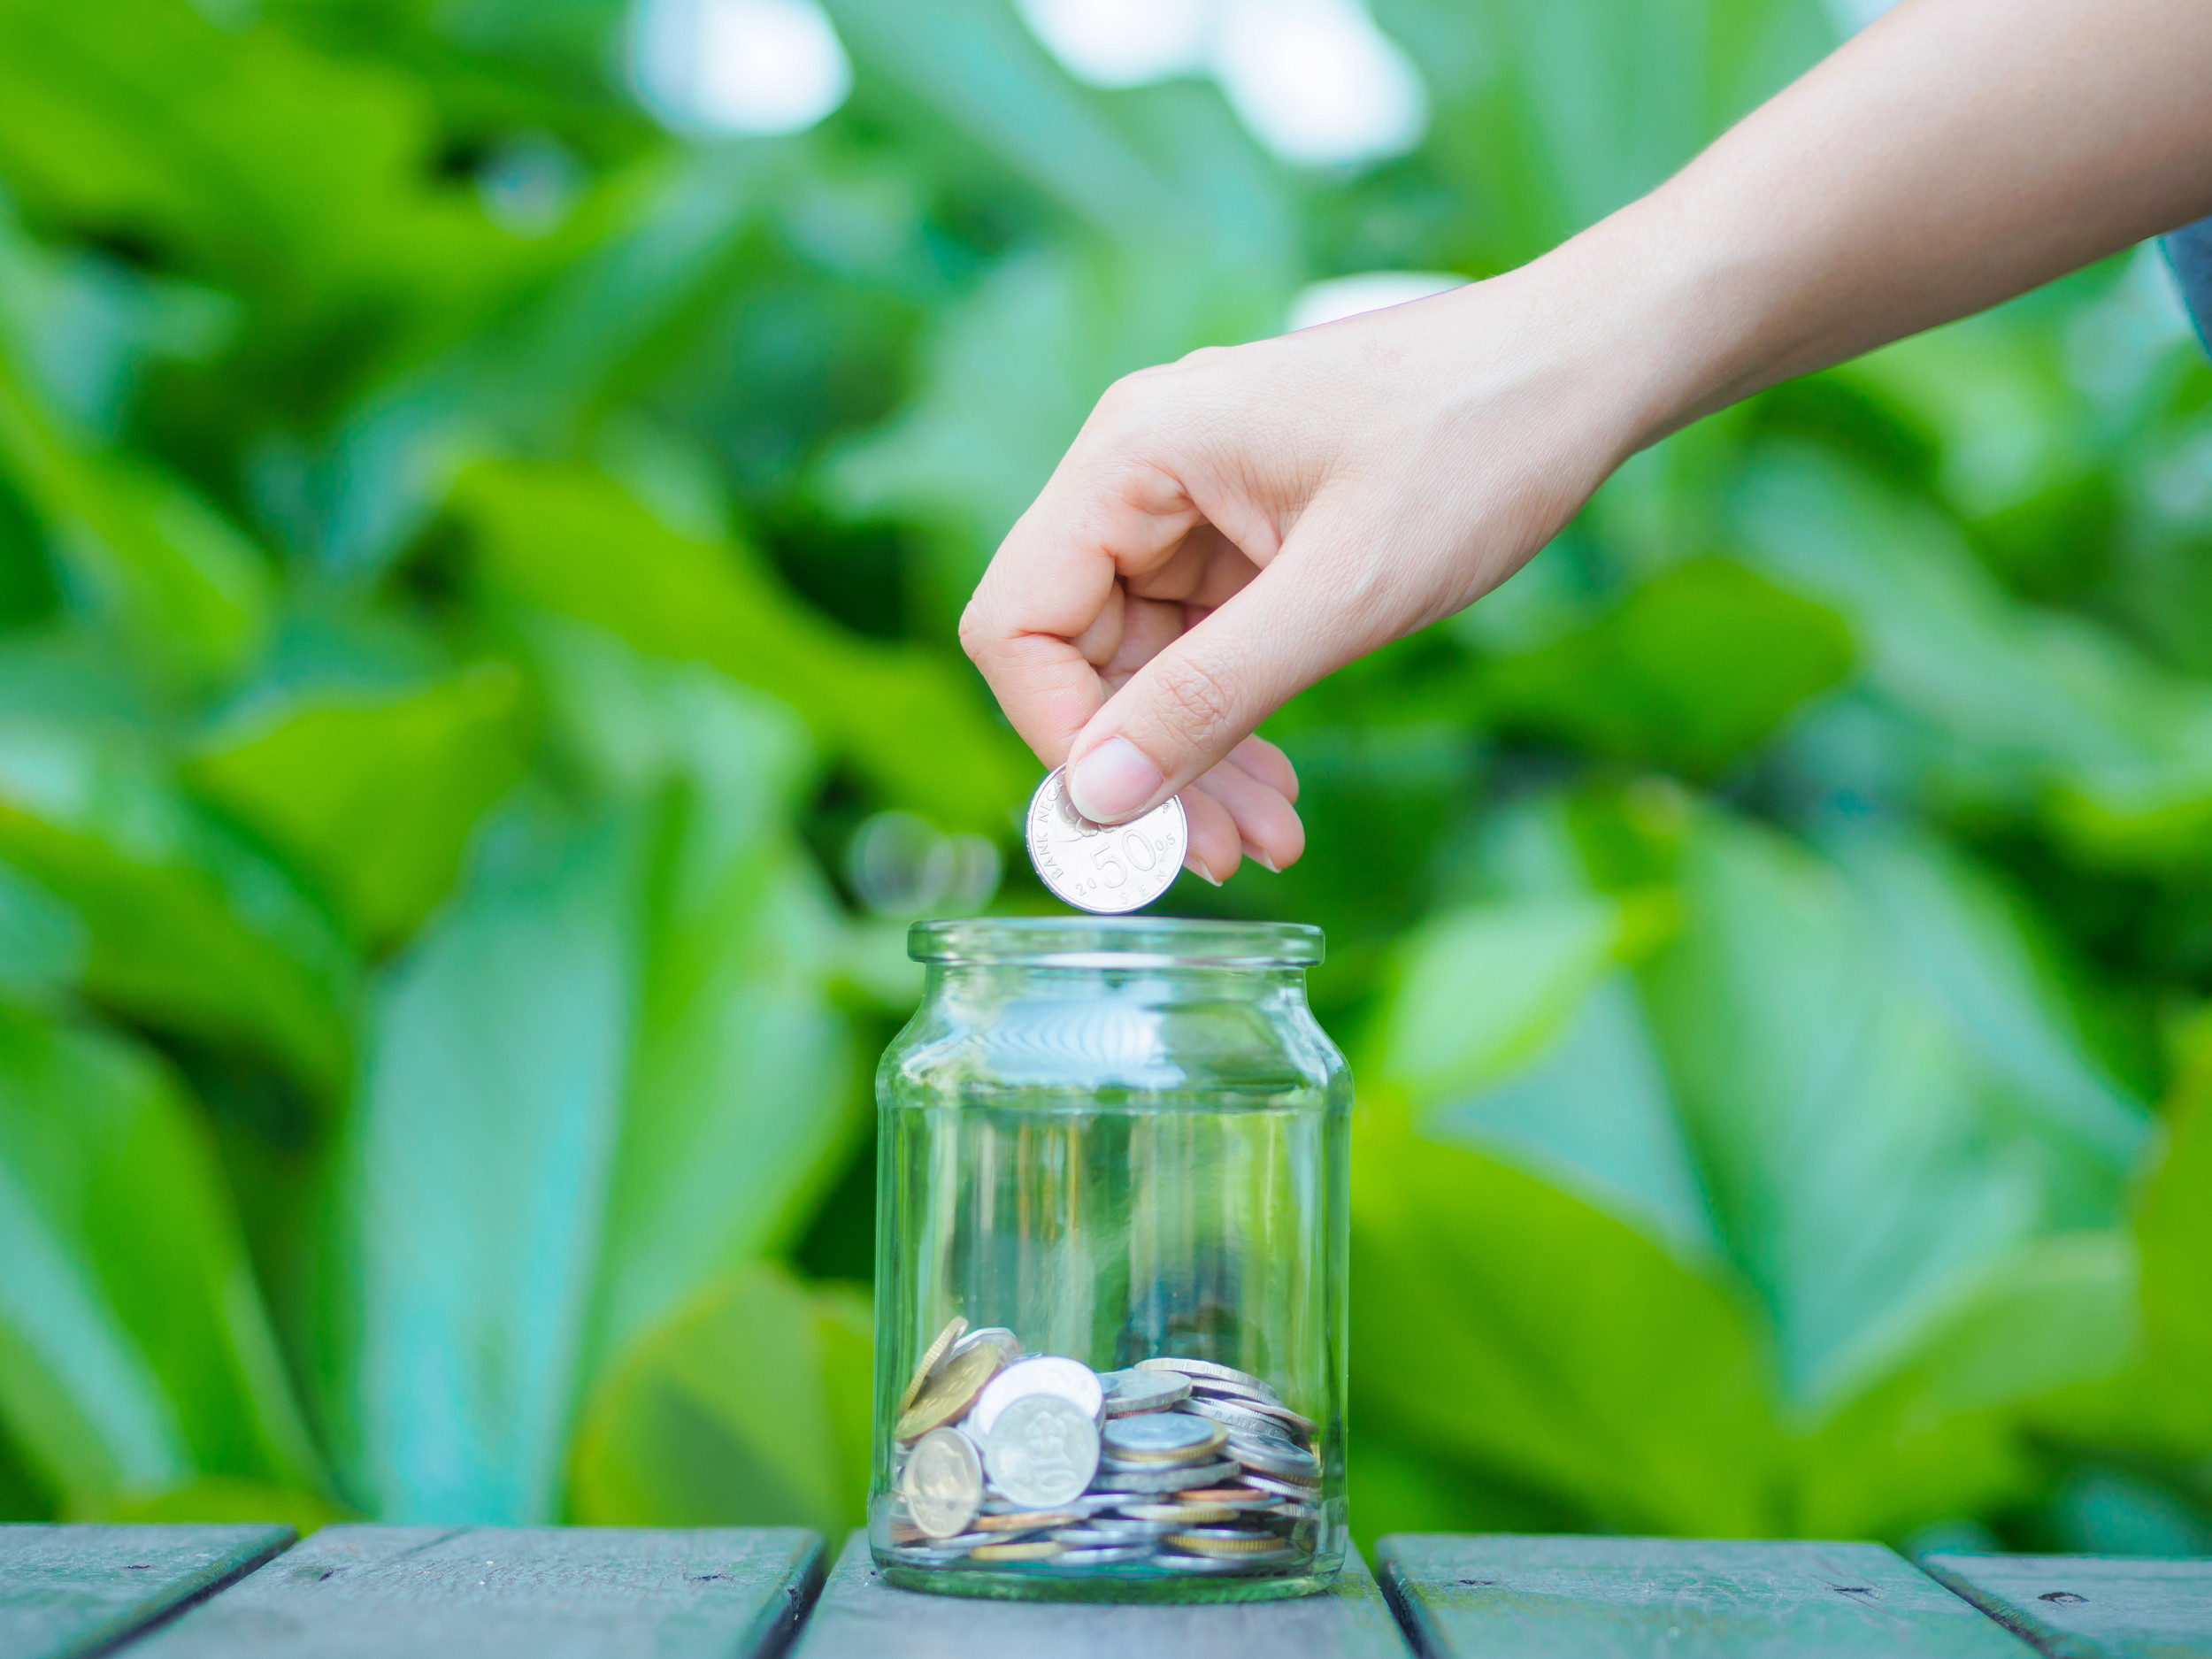 Tax Day tip: 3 smart ways to spend your tax refund